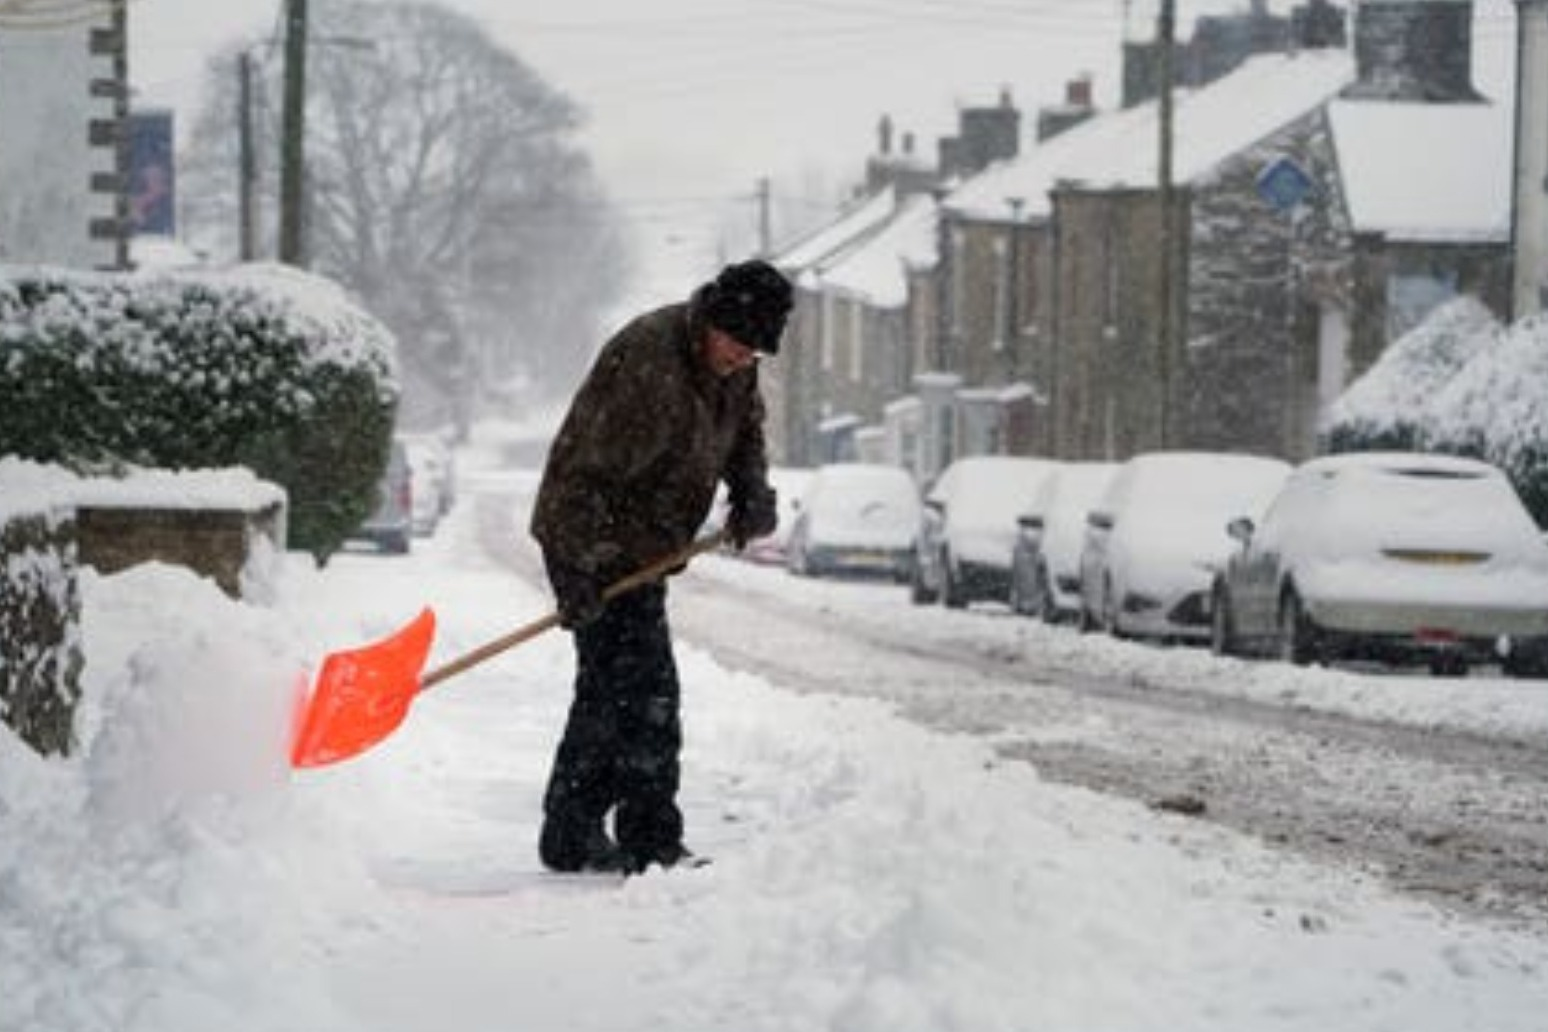 Coldest January in 10 years as wintry weather causes disruption